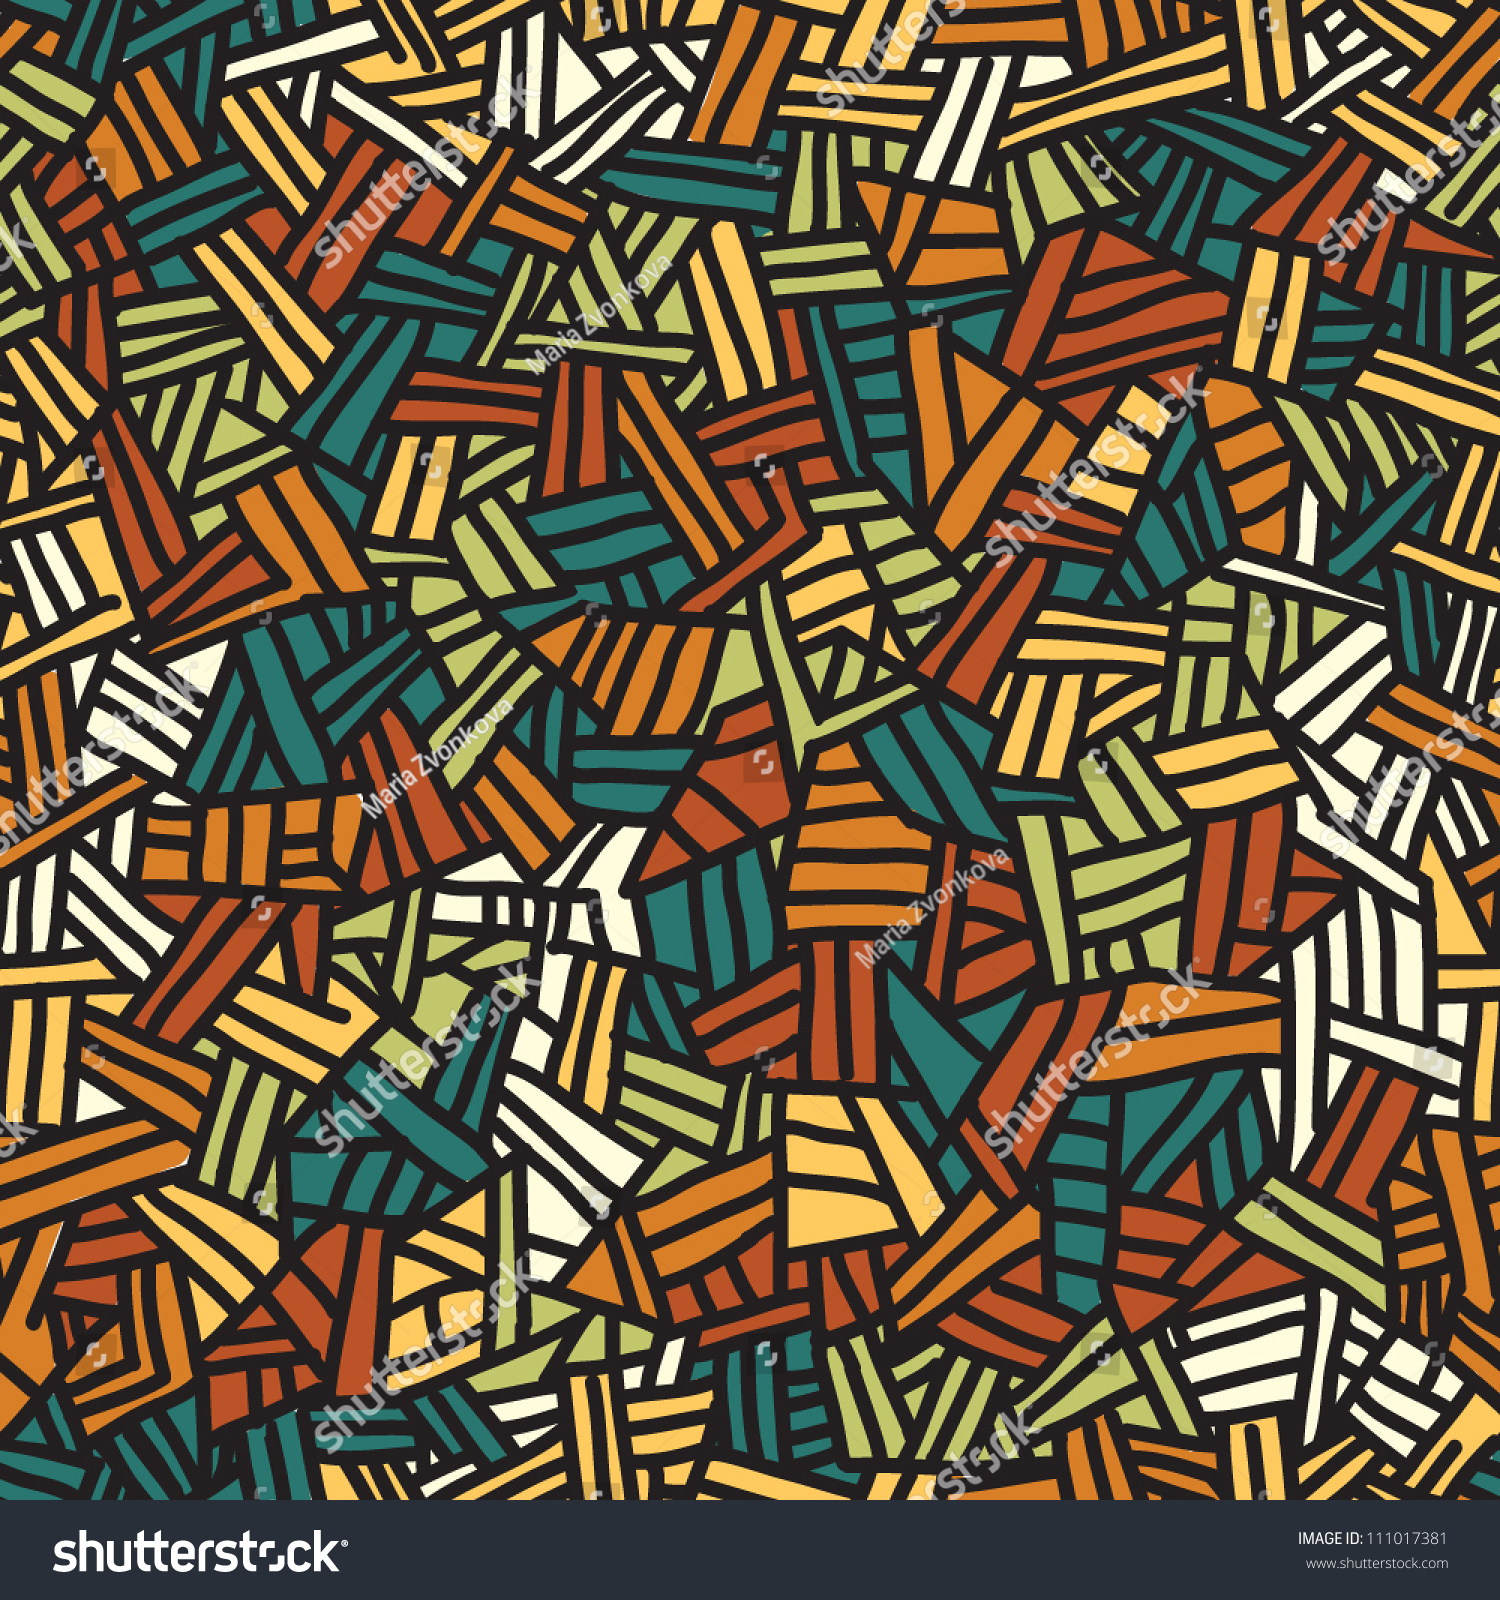 Seamless Stained Glass Pattern Endless Handdrawn Stock Vector